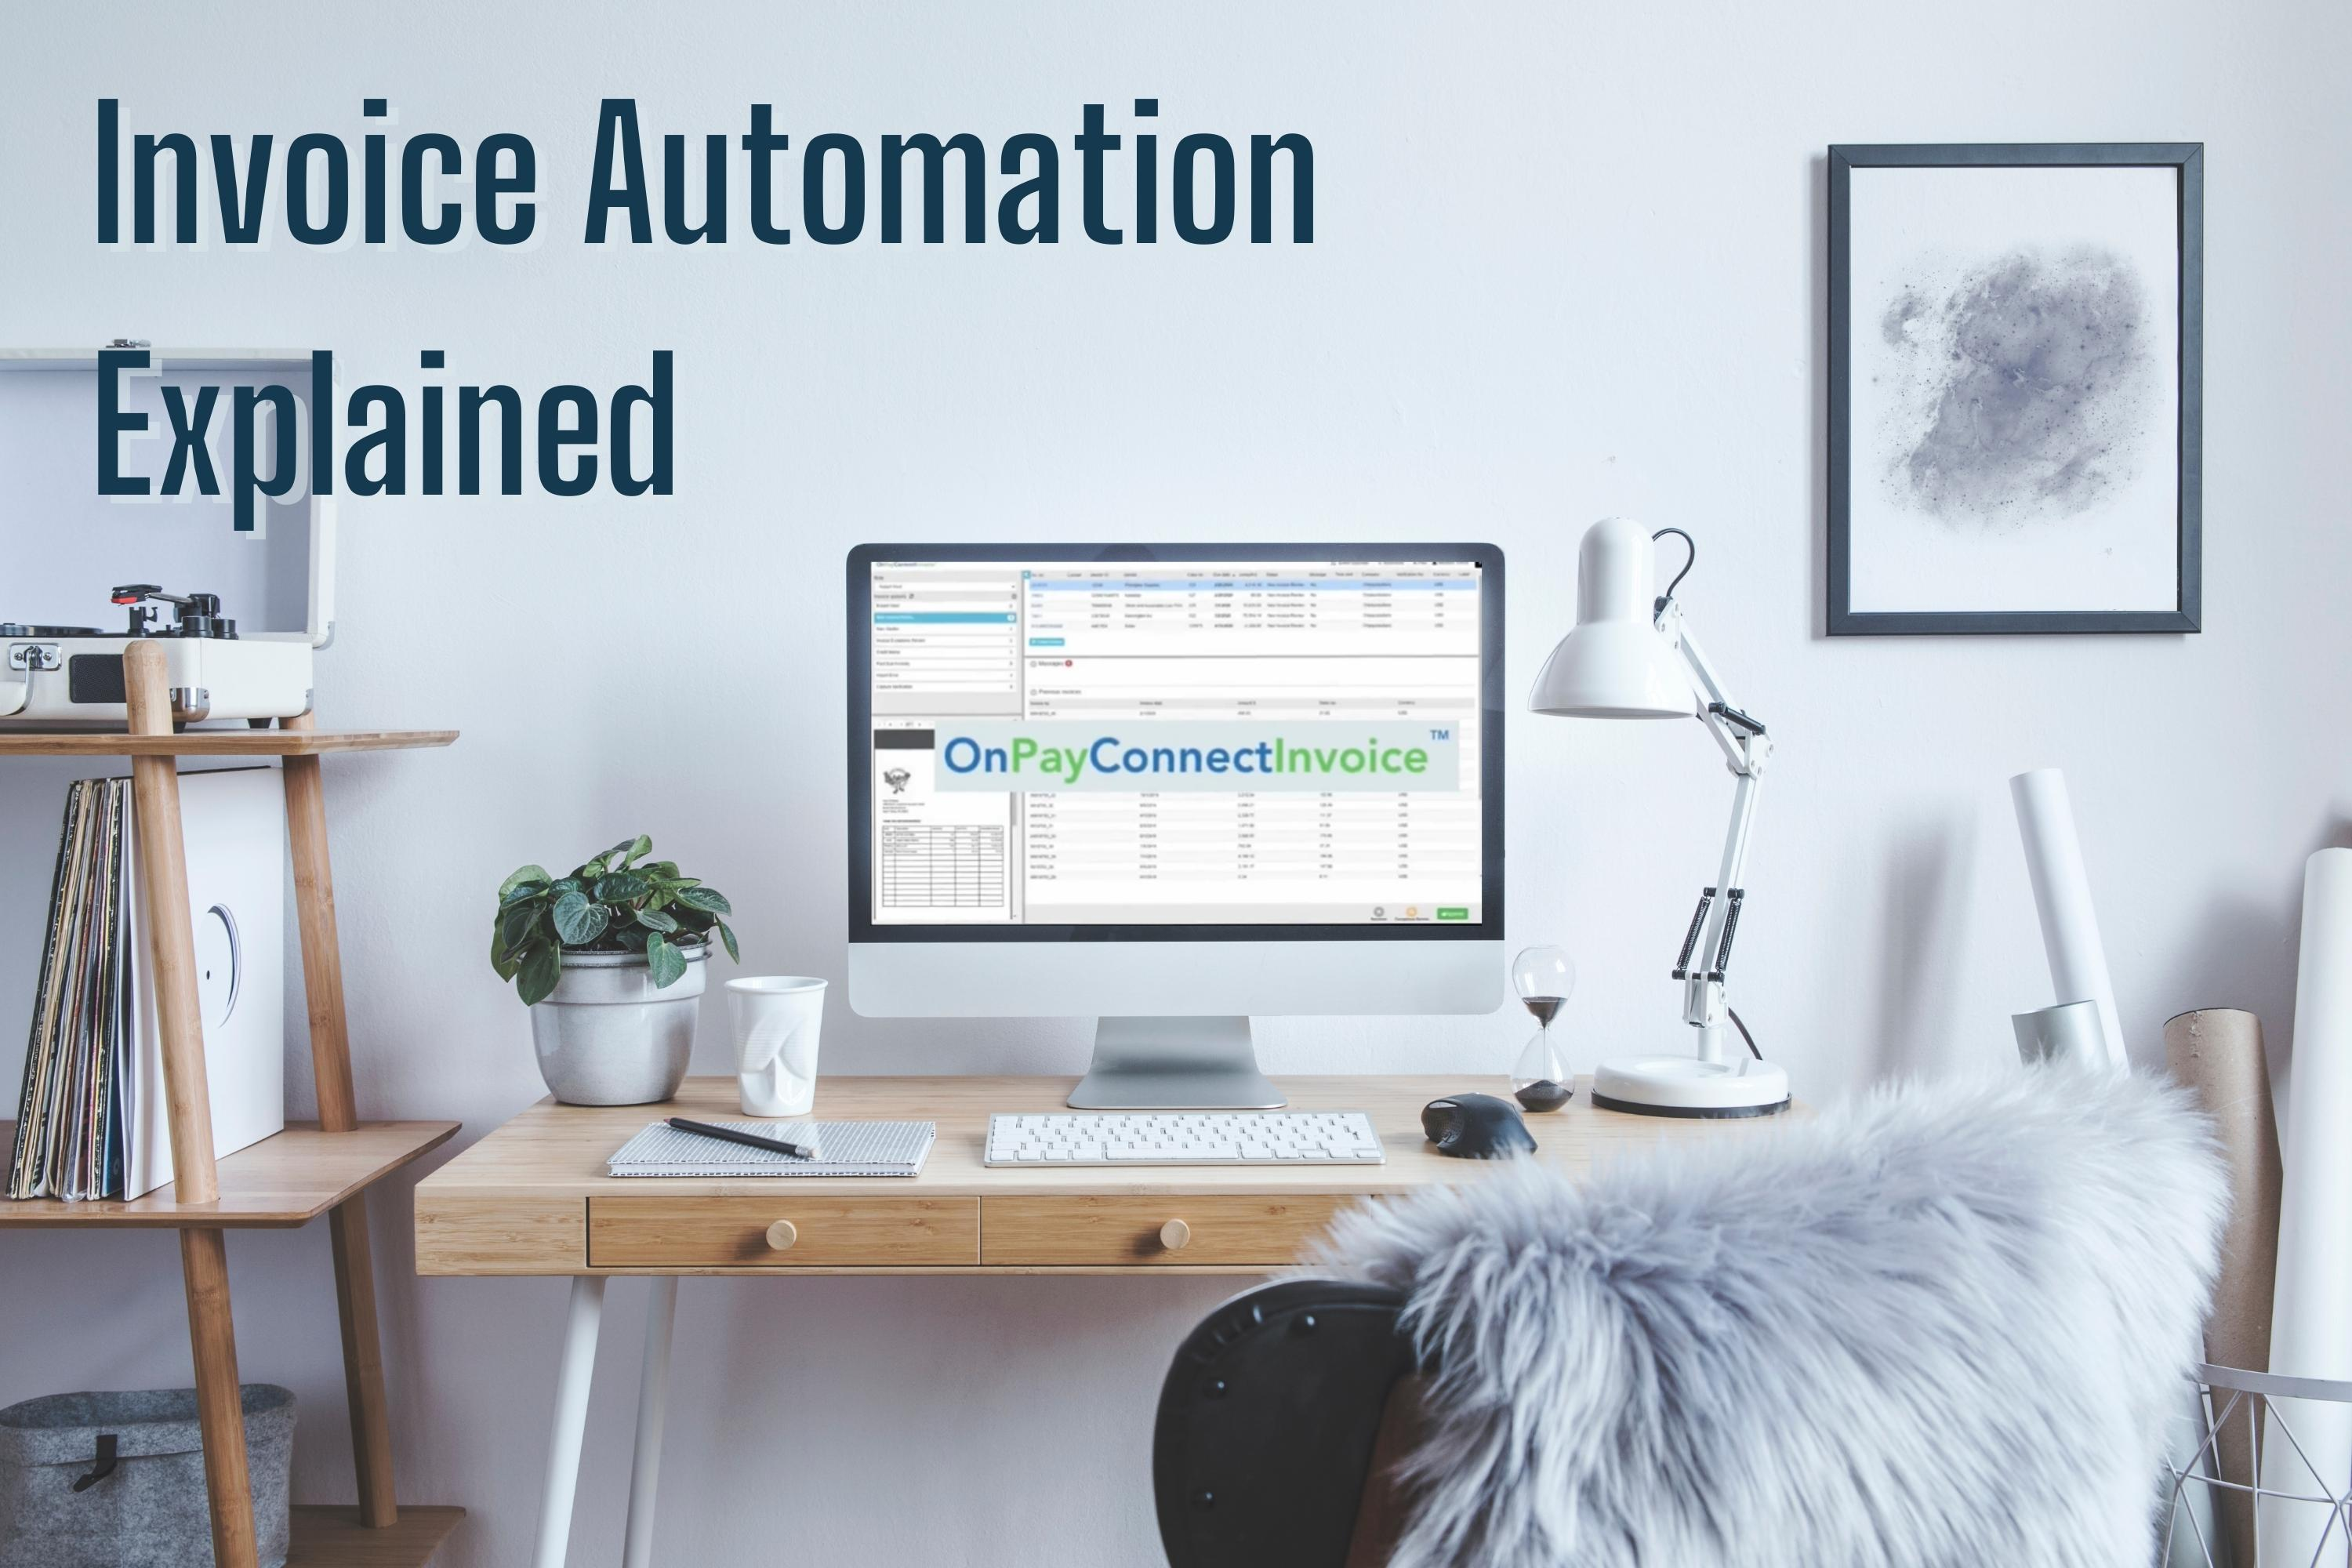 interior-of-home-creative-deak-preview-of-invoice-automation-explained-video-on-computer-screen